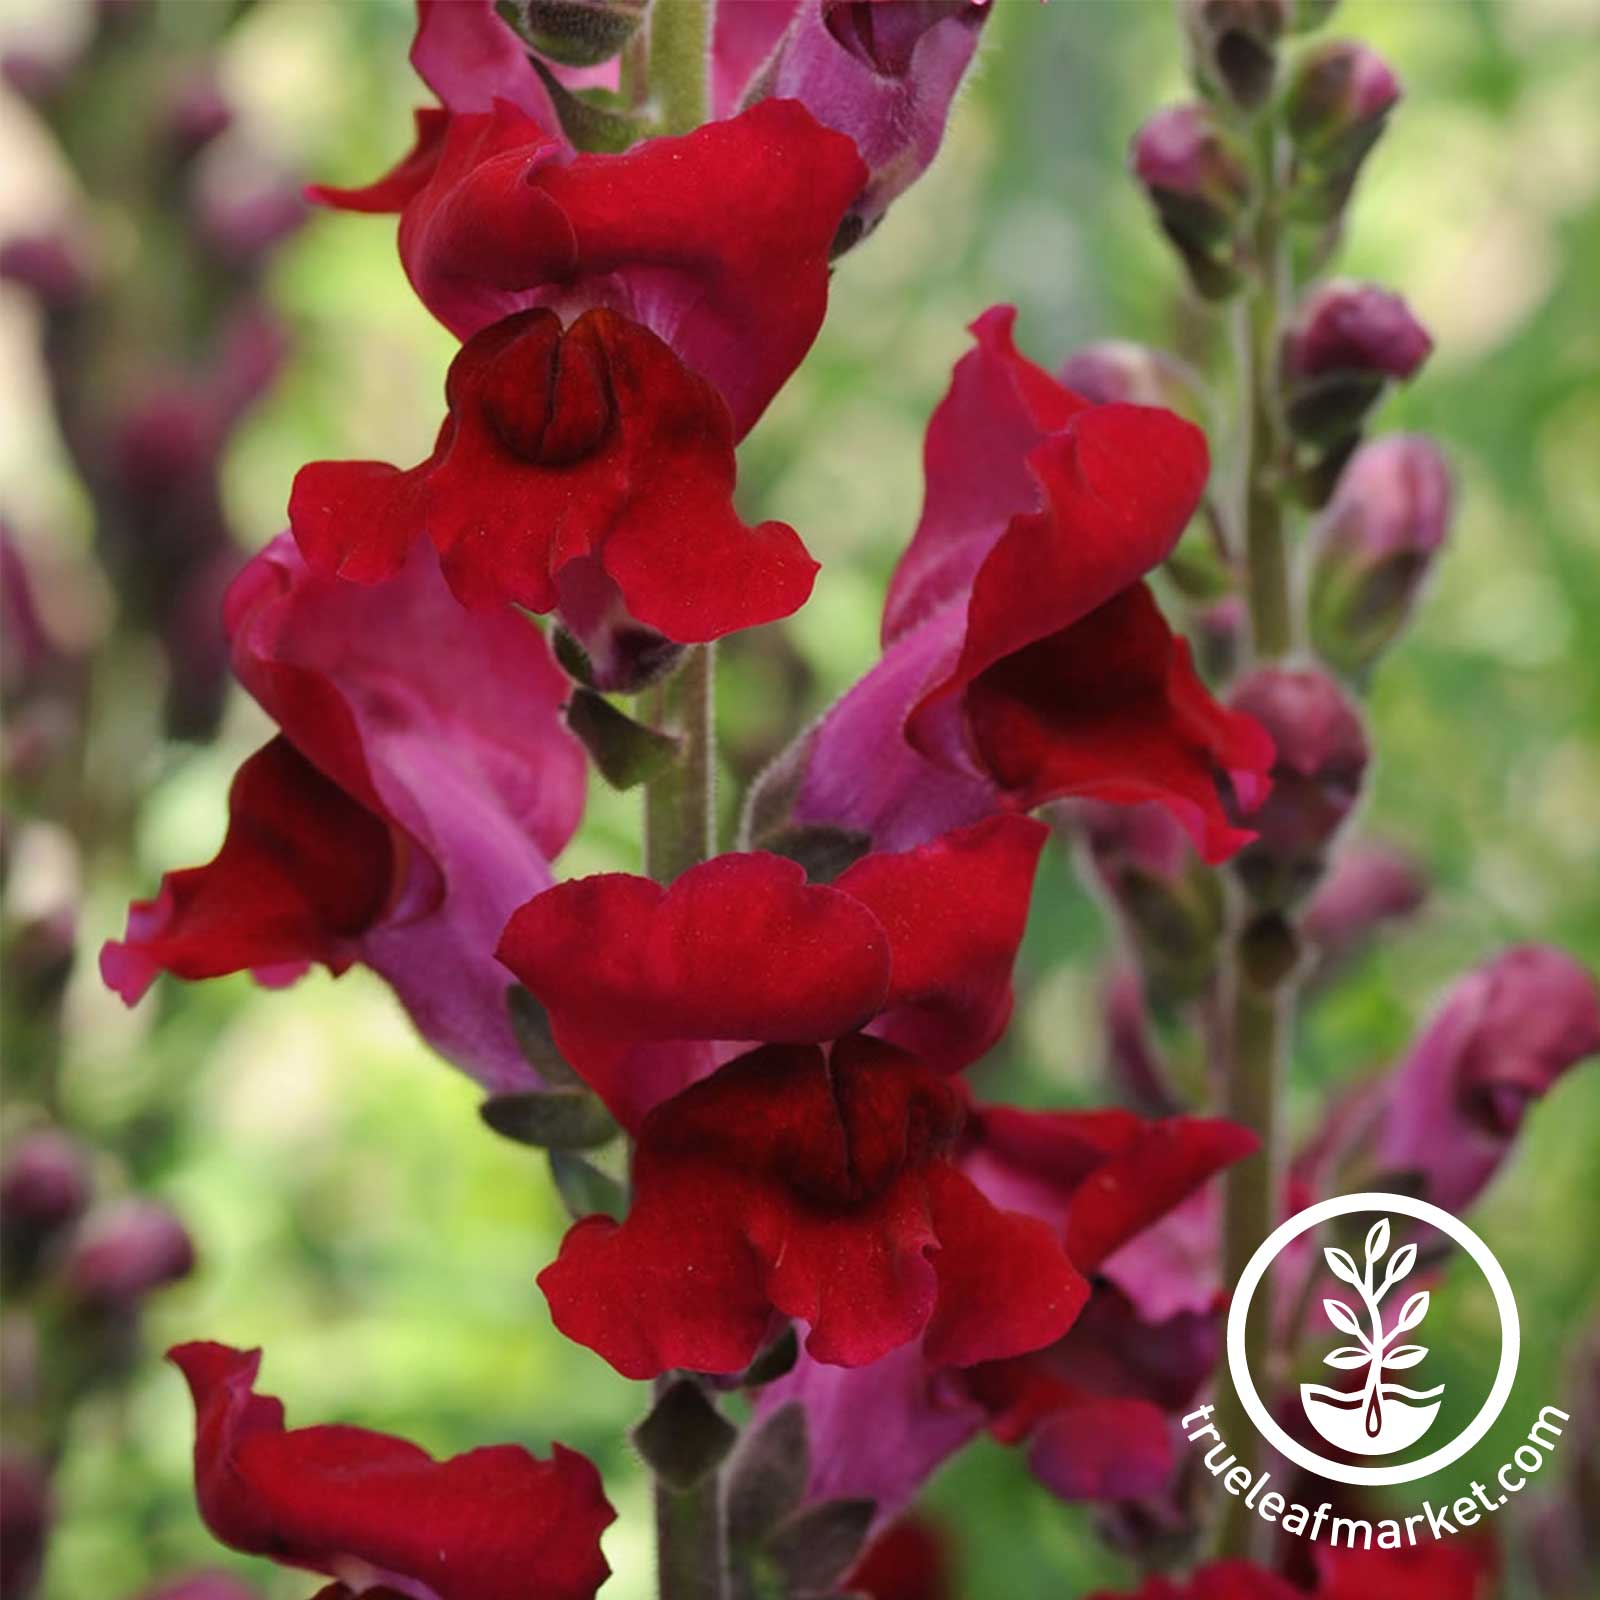 Snapdragon Rocket Series Red Seed